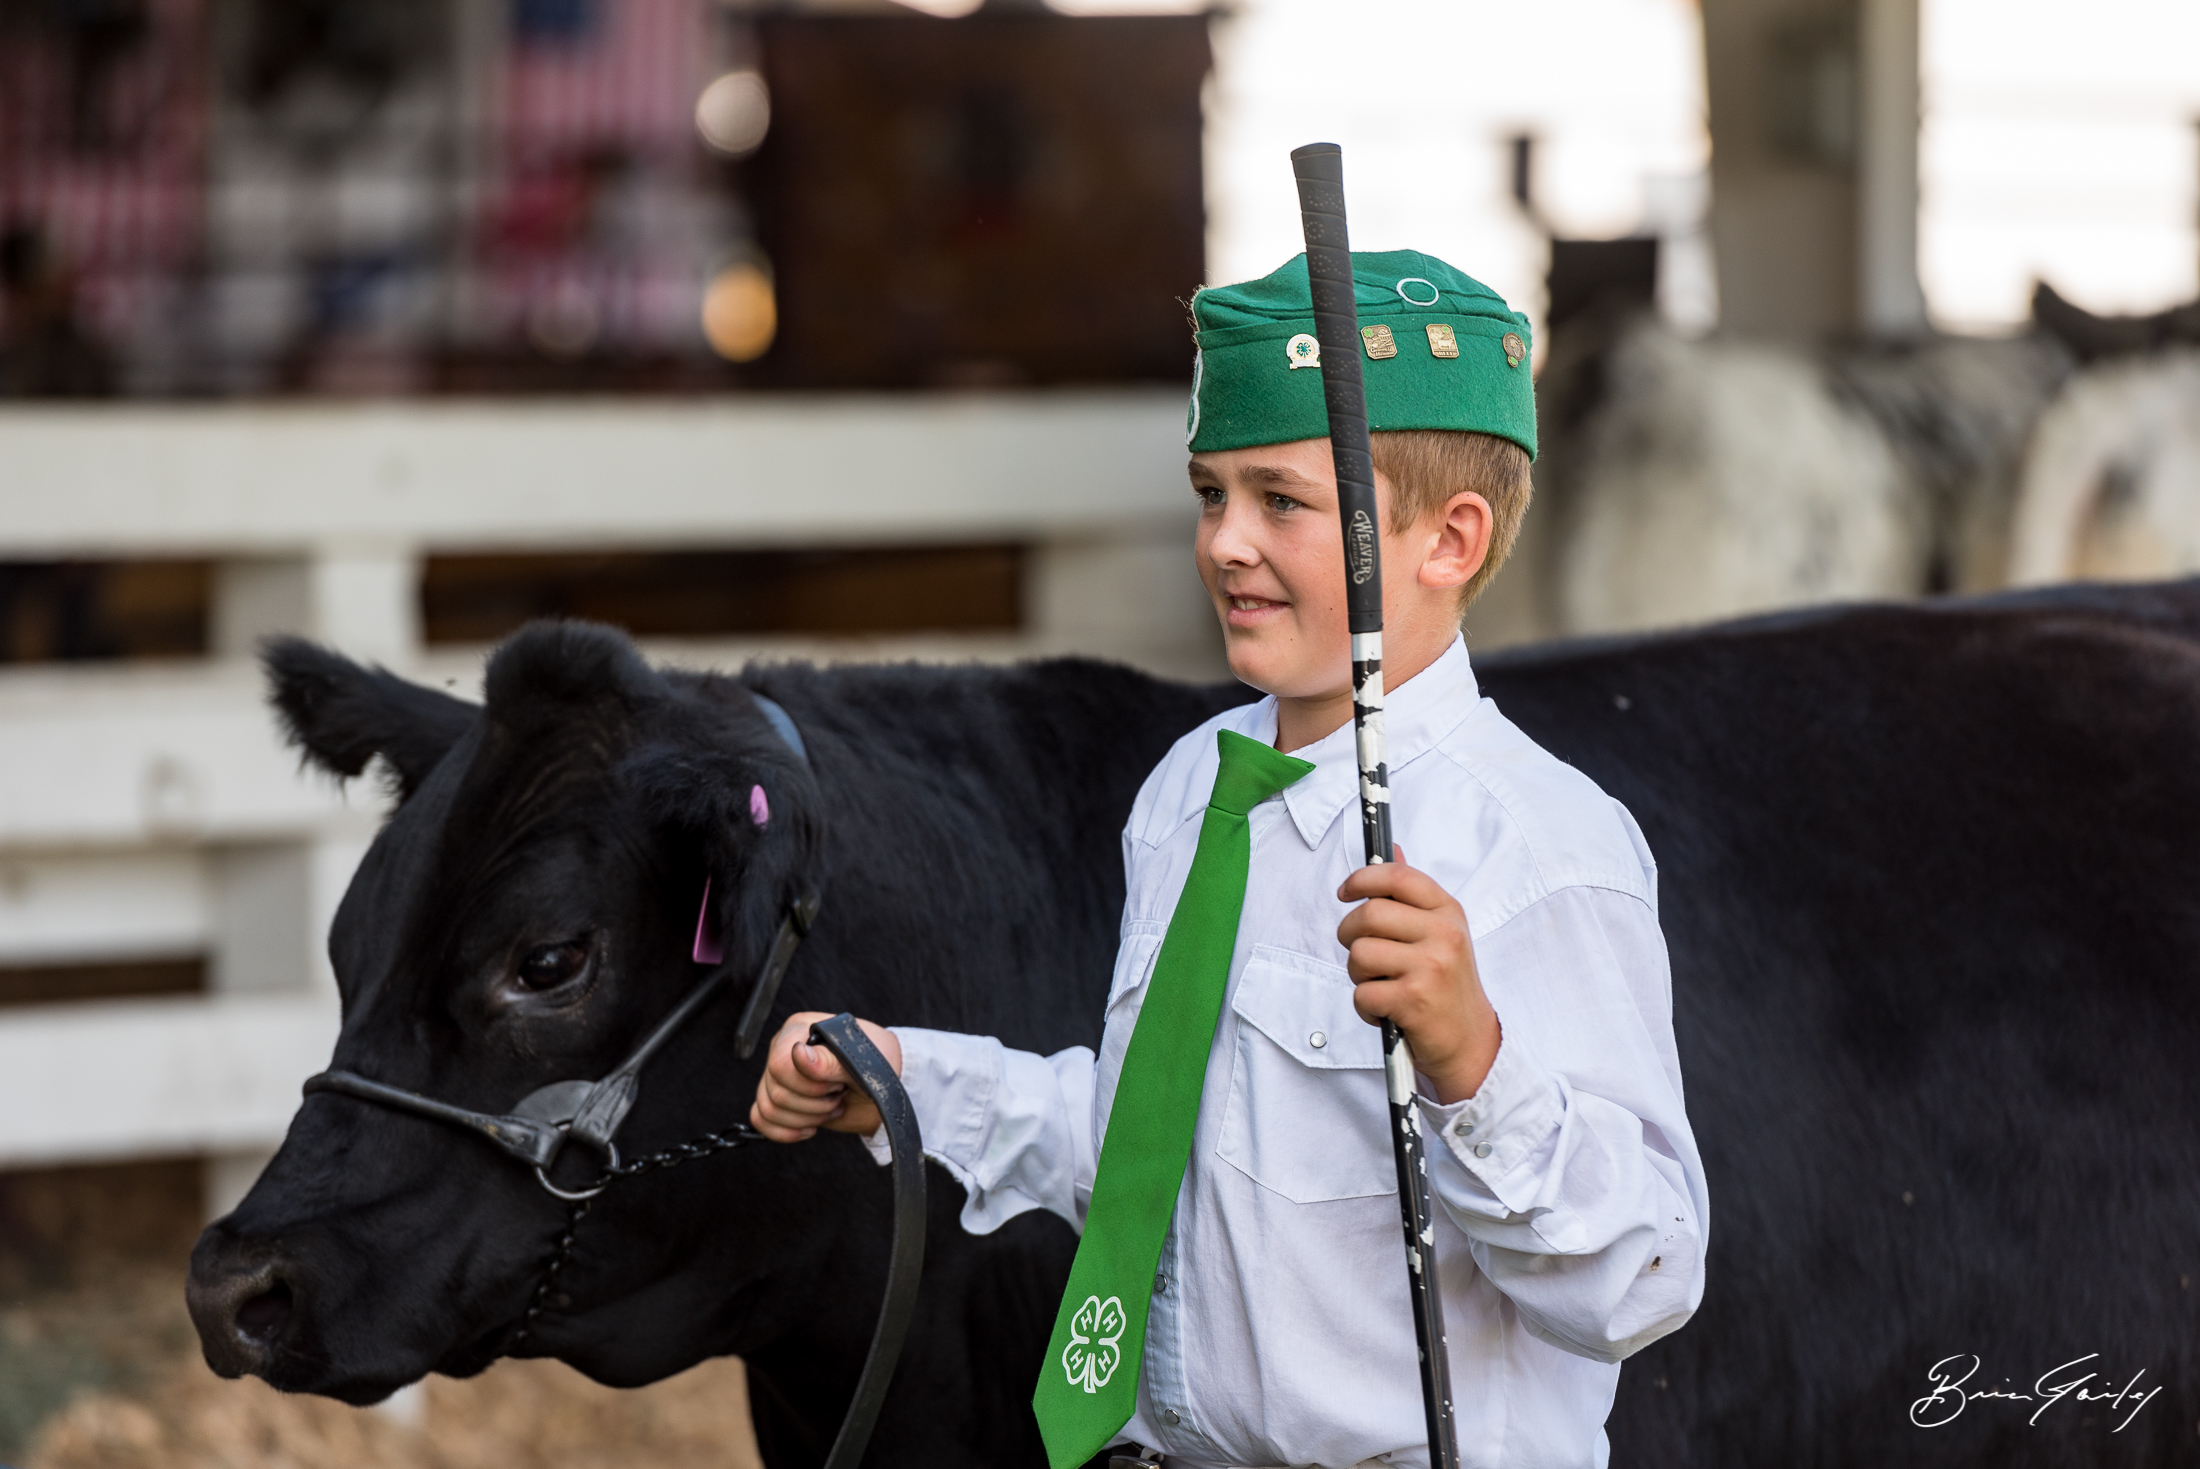 This young 4-H Member just shown his steer to a wonderful Reserve Champion result.  Image:  Brian Gailey  Tulelake Butte Valley Fair 2017